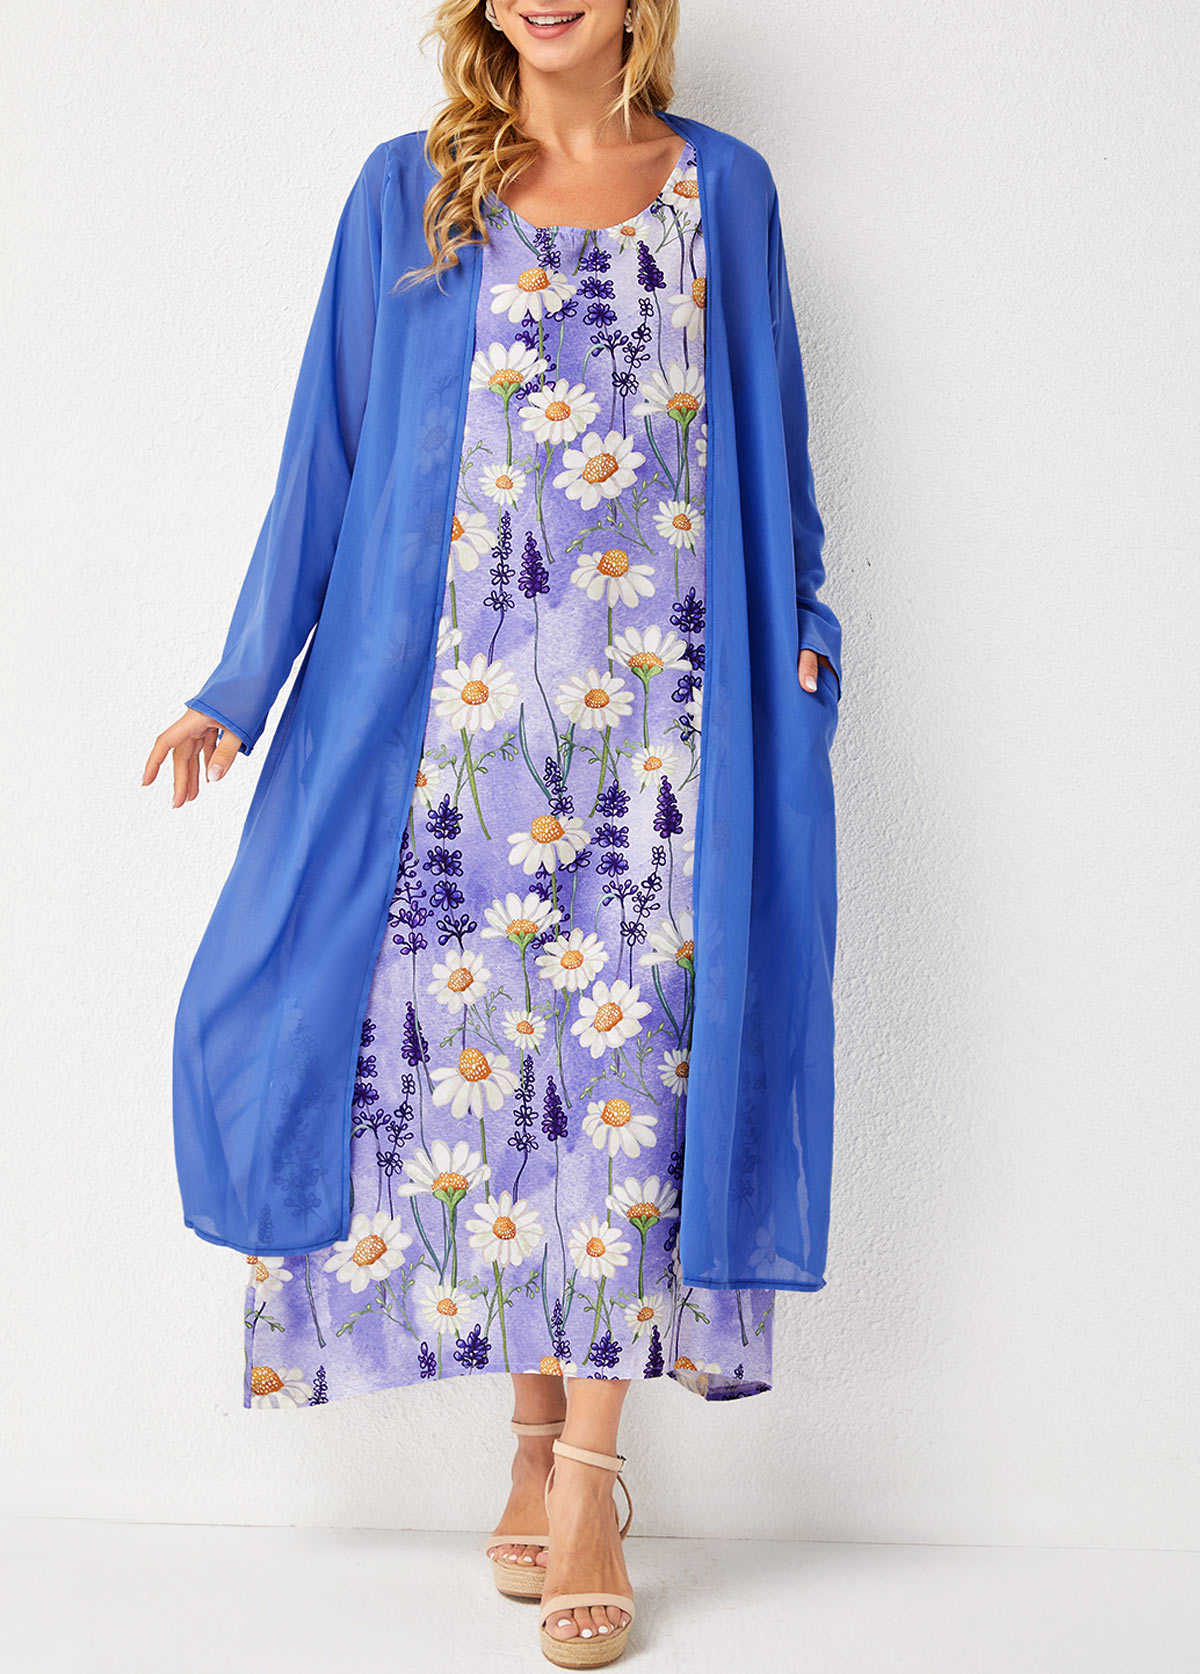 Pocket Detail Solid Cardigan and Floral Print Sleeveless Dress